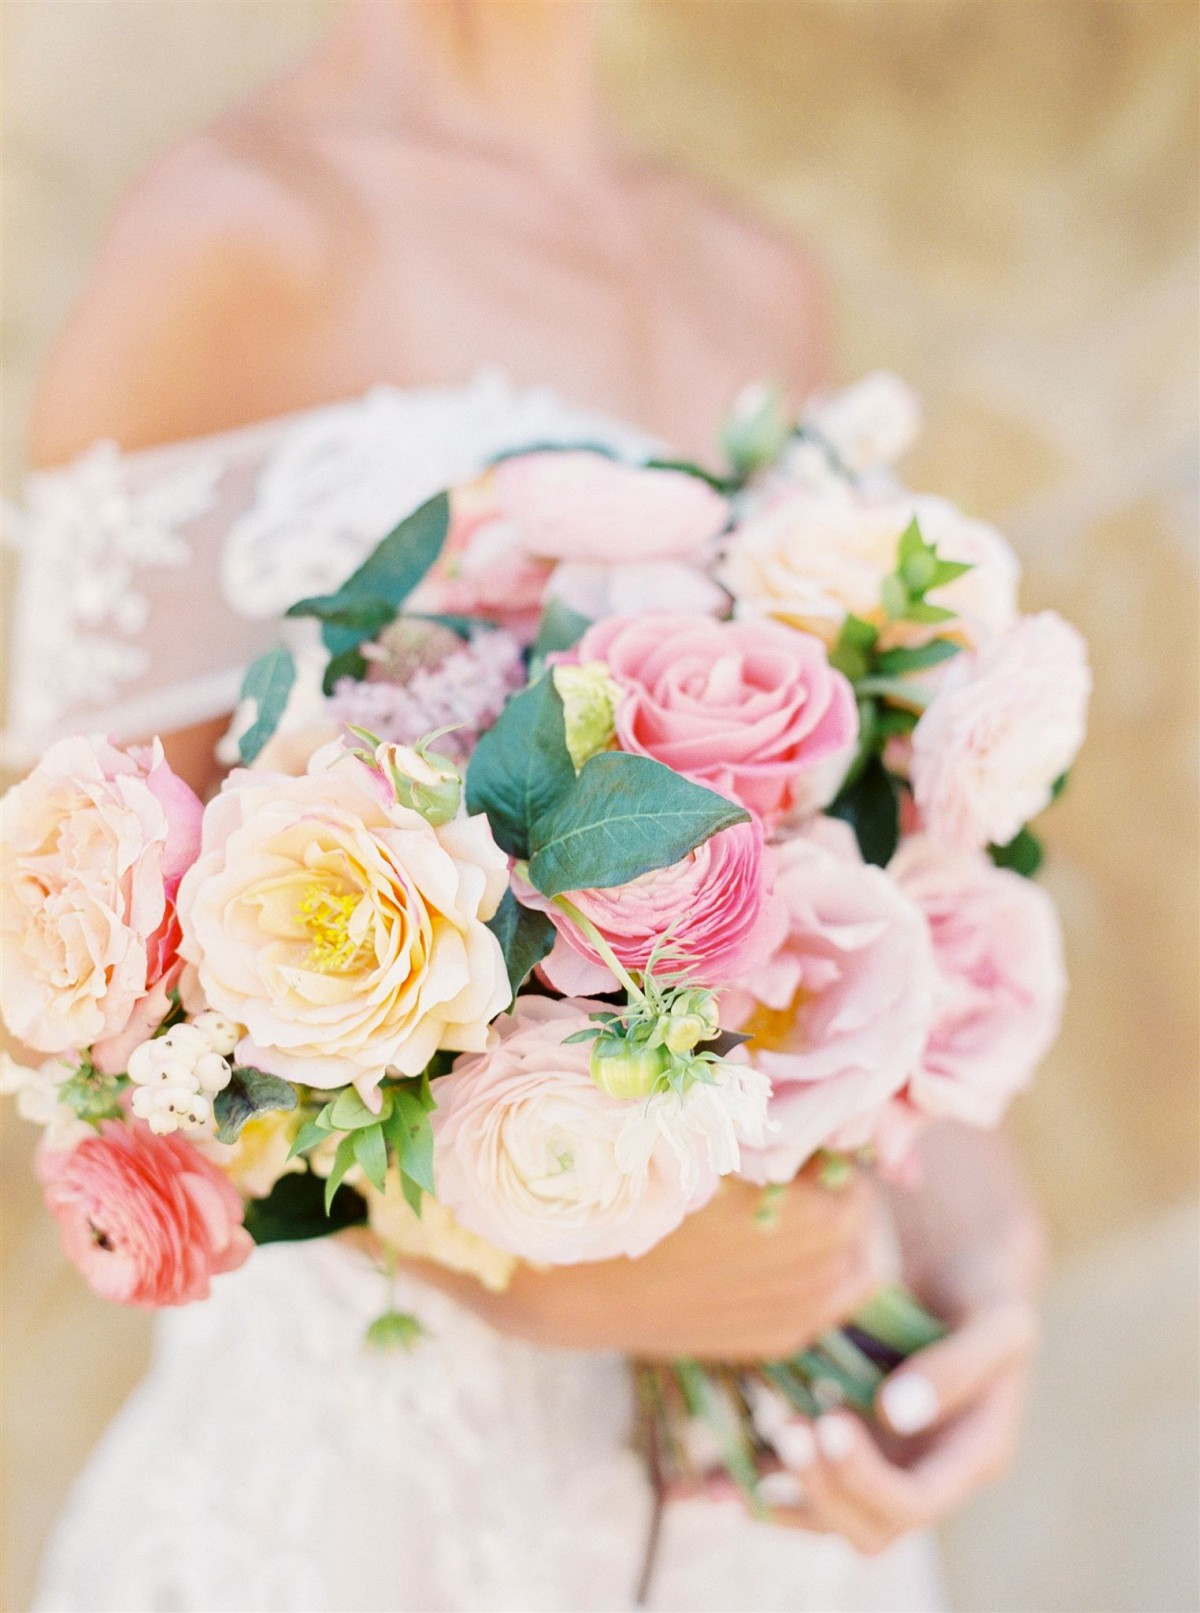 Tuscan Wedding Style in the South